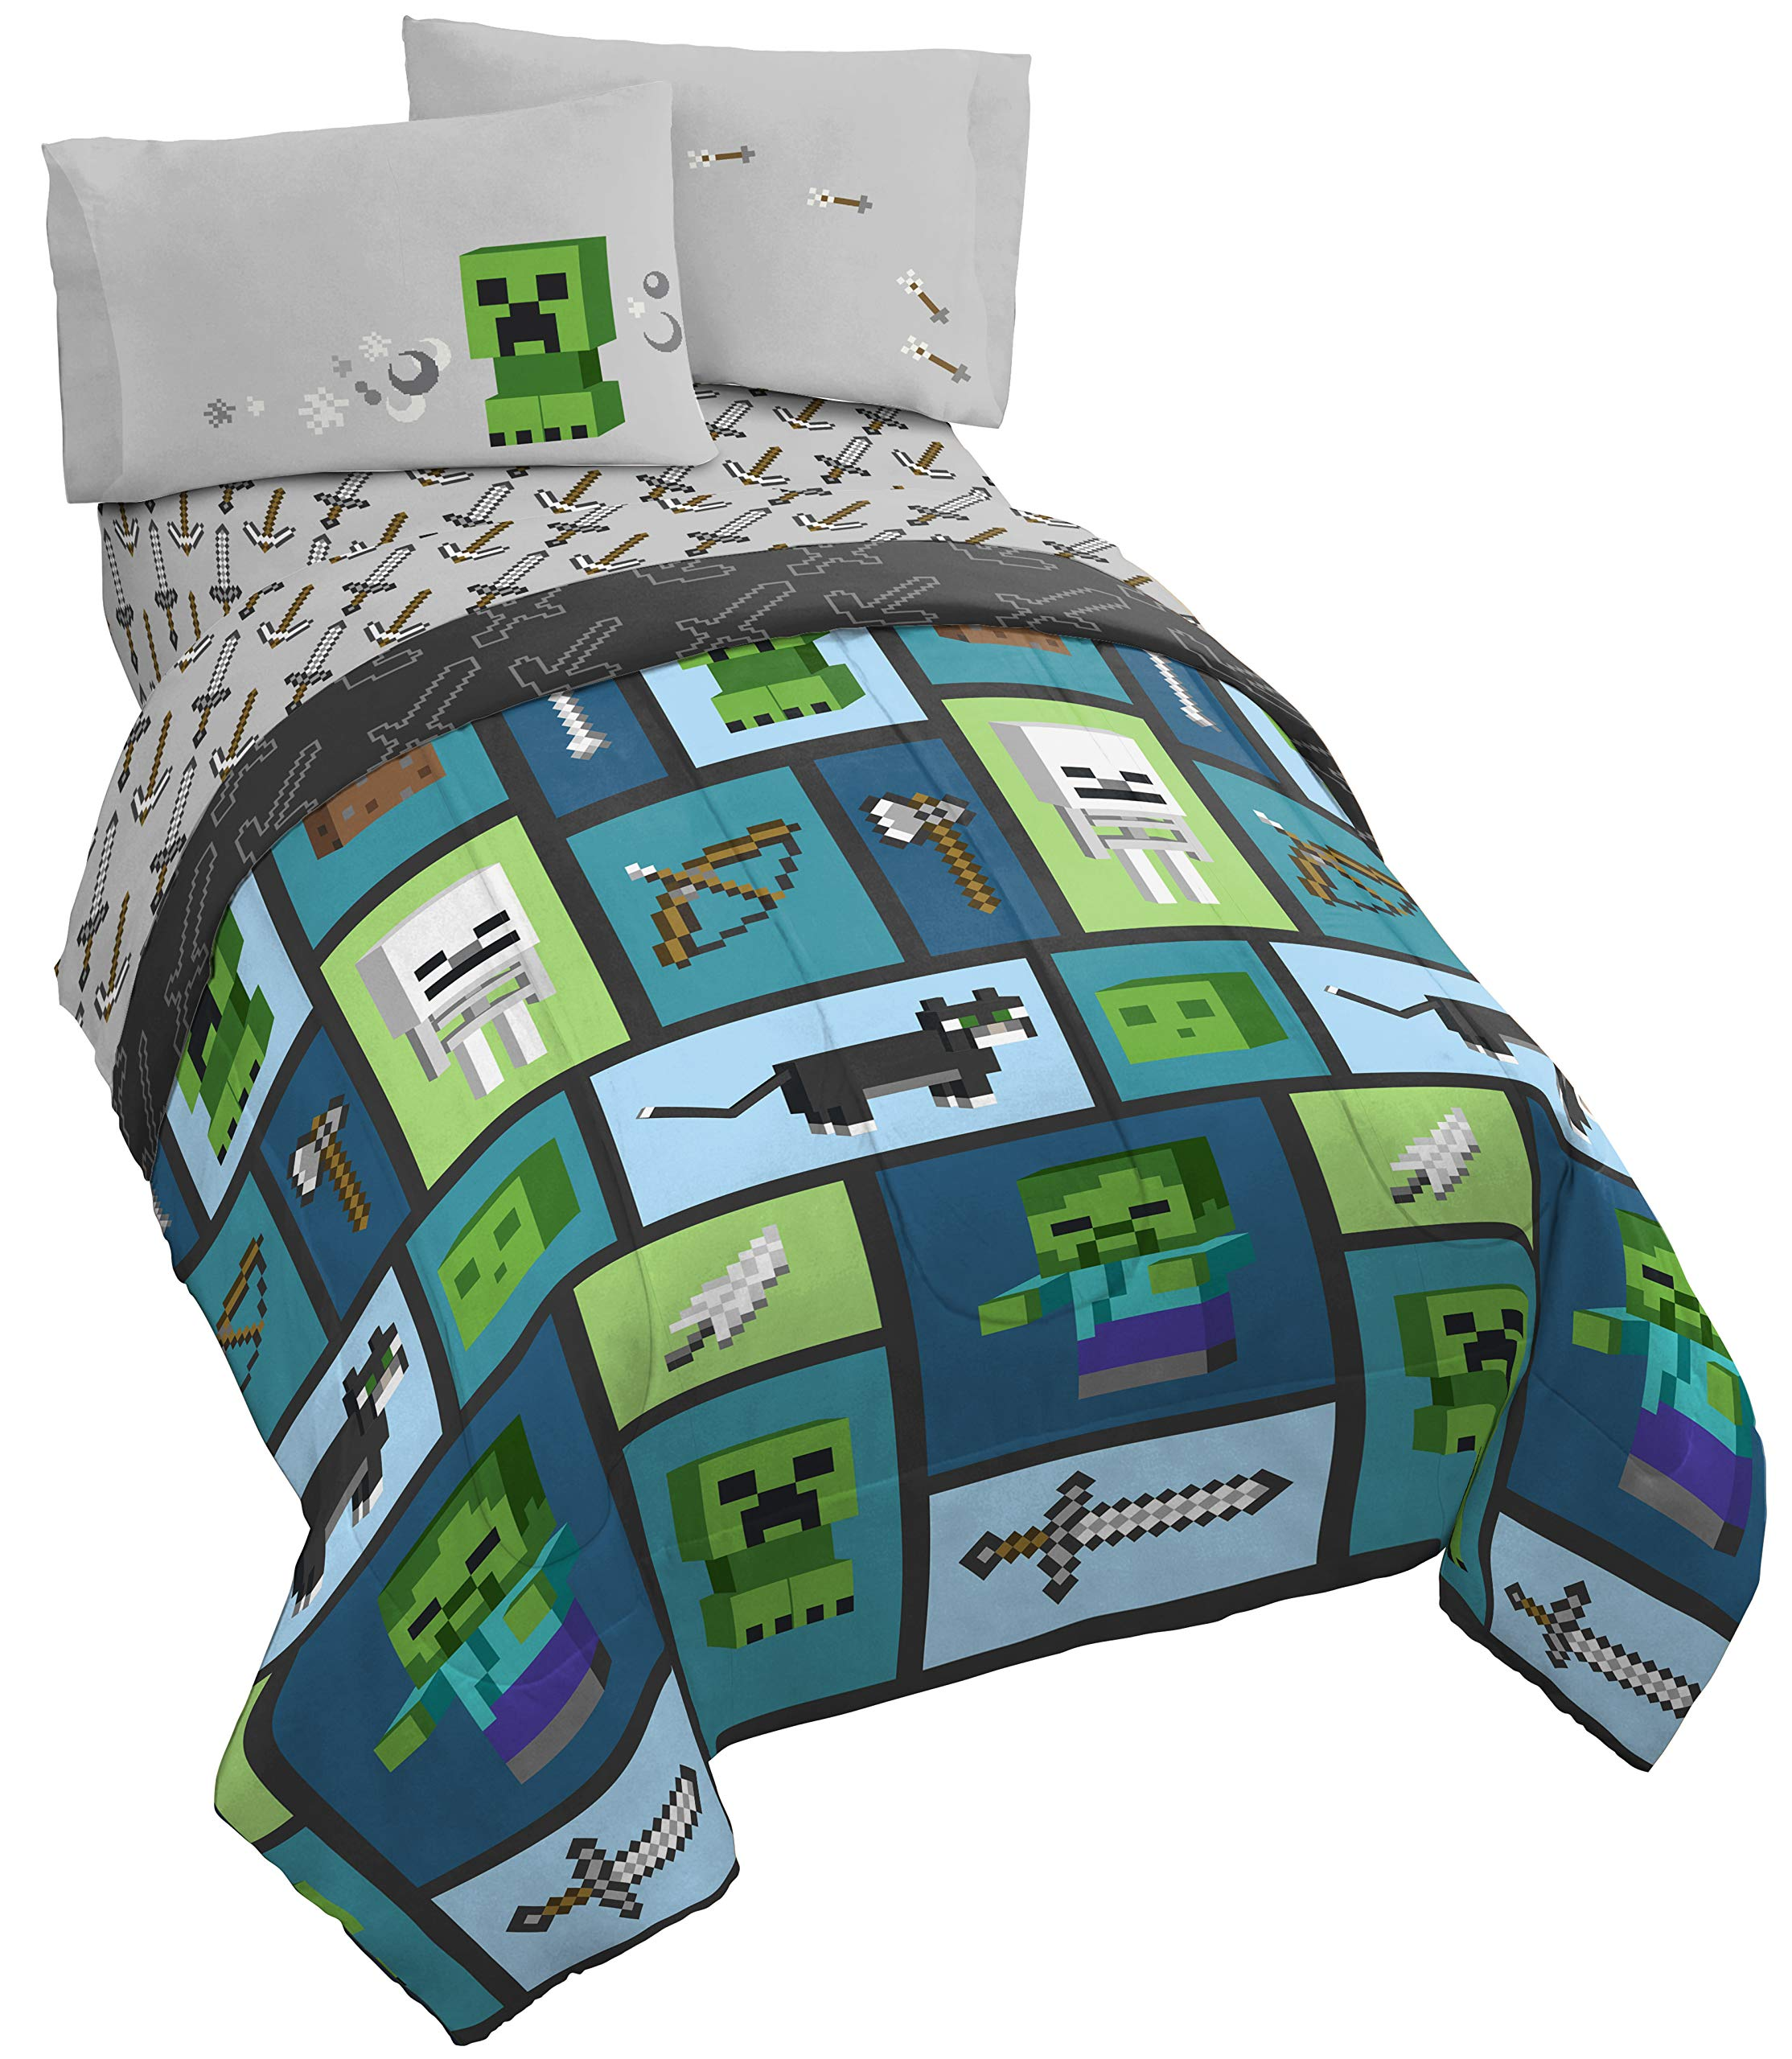 Minecraft Chibi College 5 Piece Full Bed Set - Includes Reversible Comforter & Sheet Set - Bedding Features Creeper & Ghos...